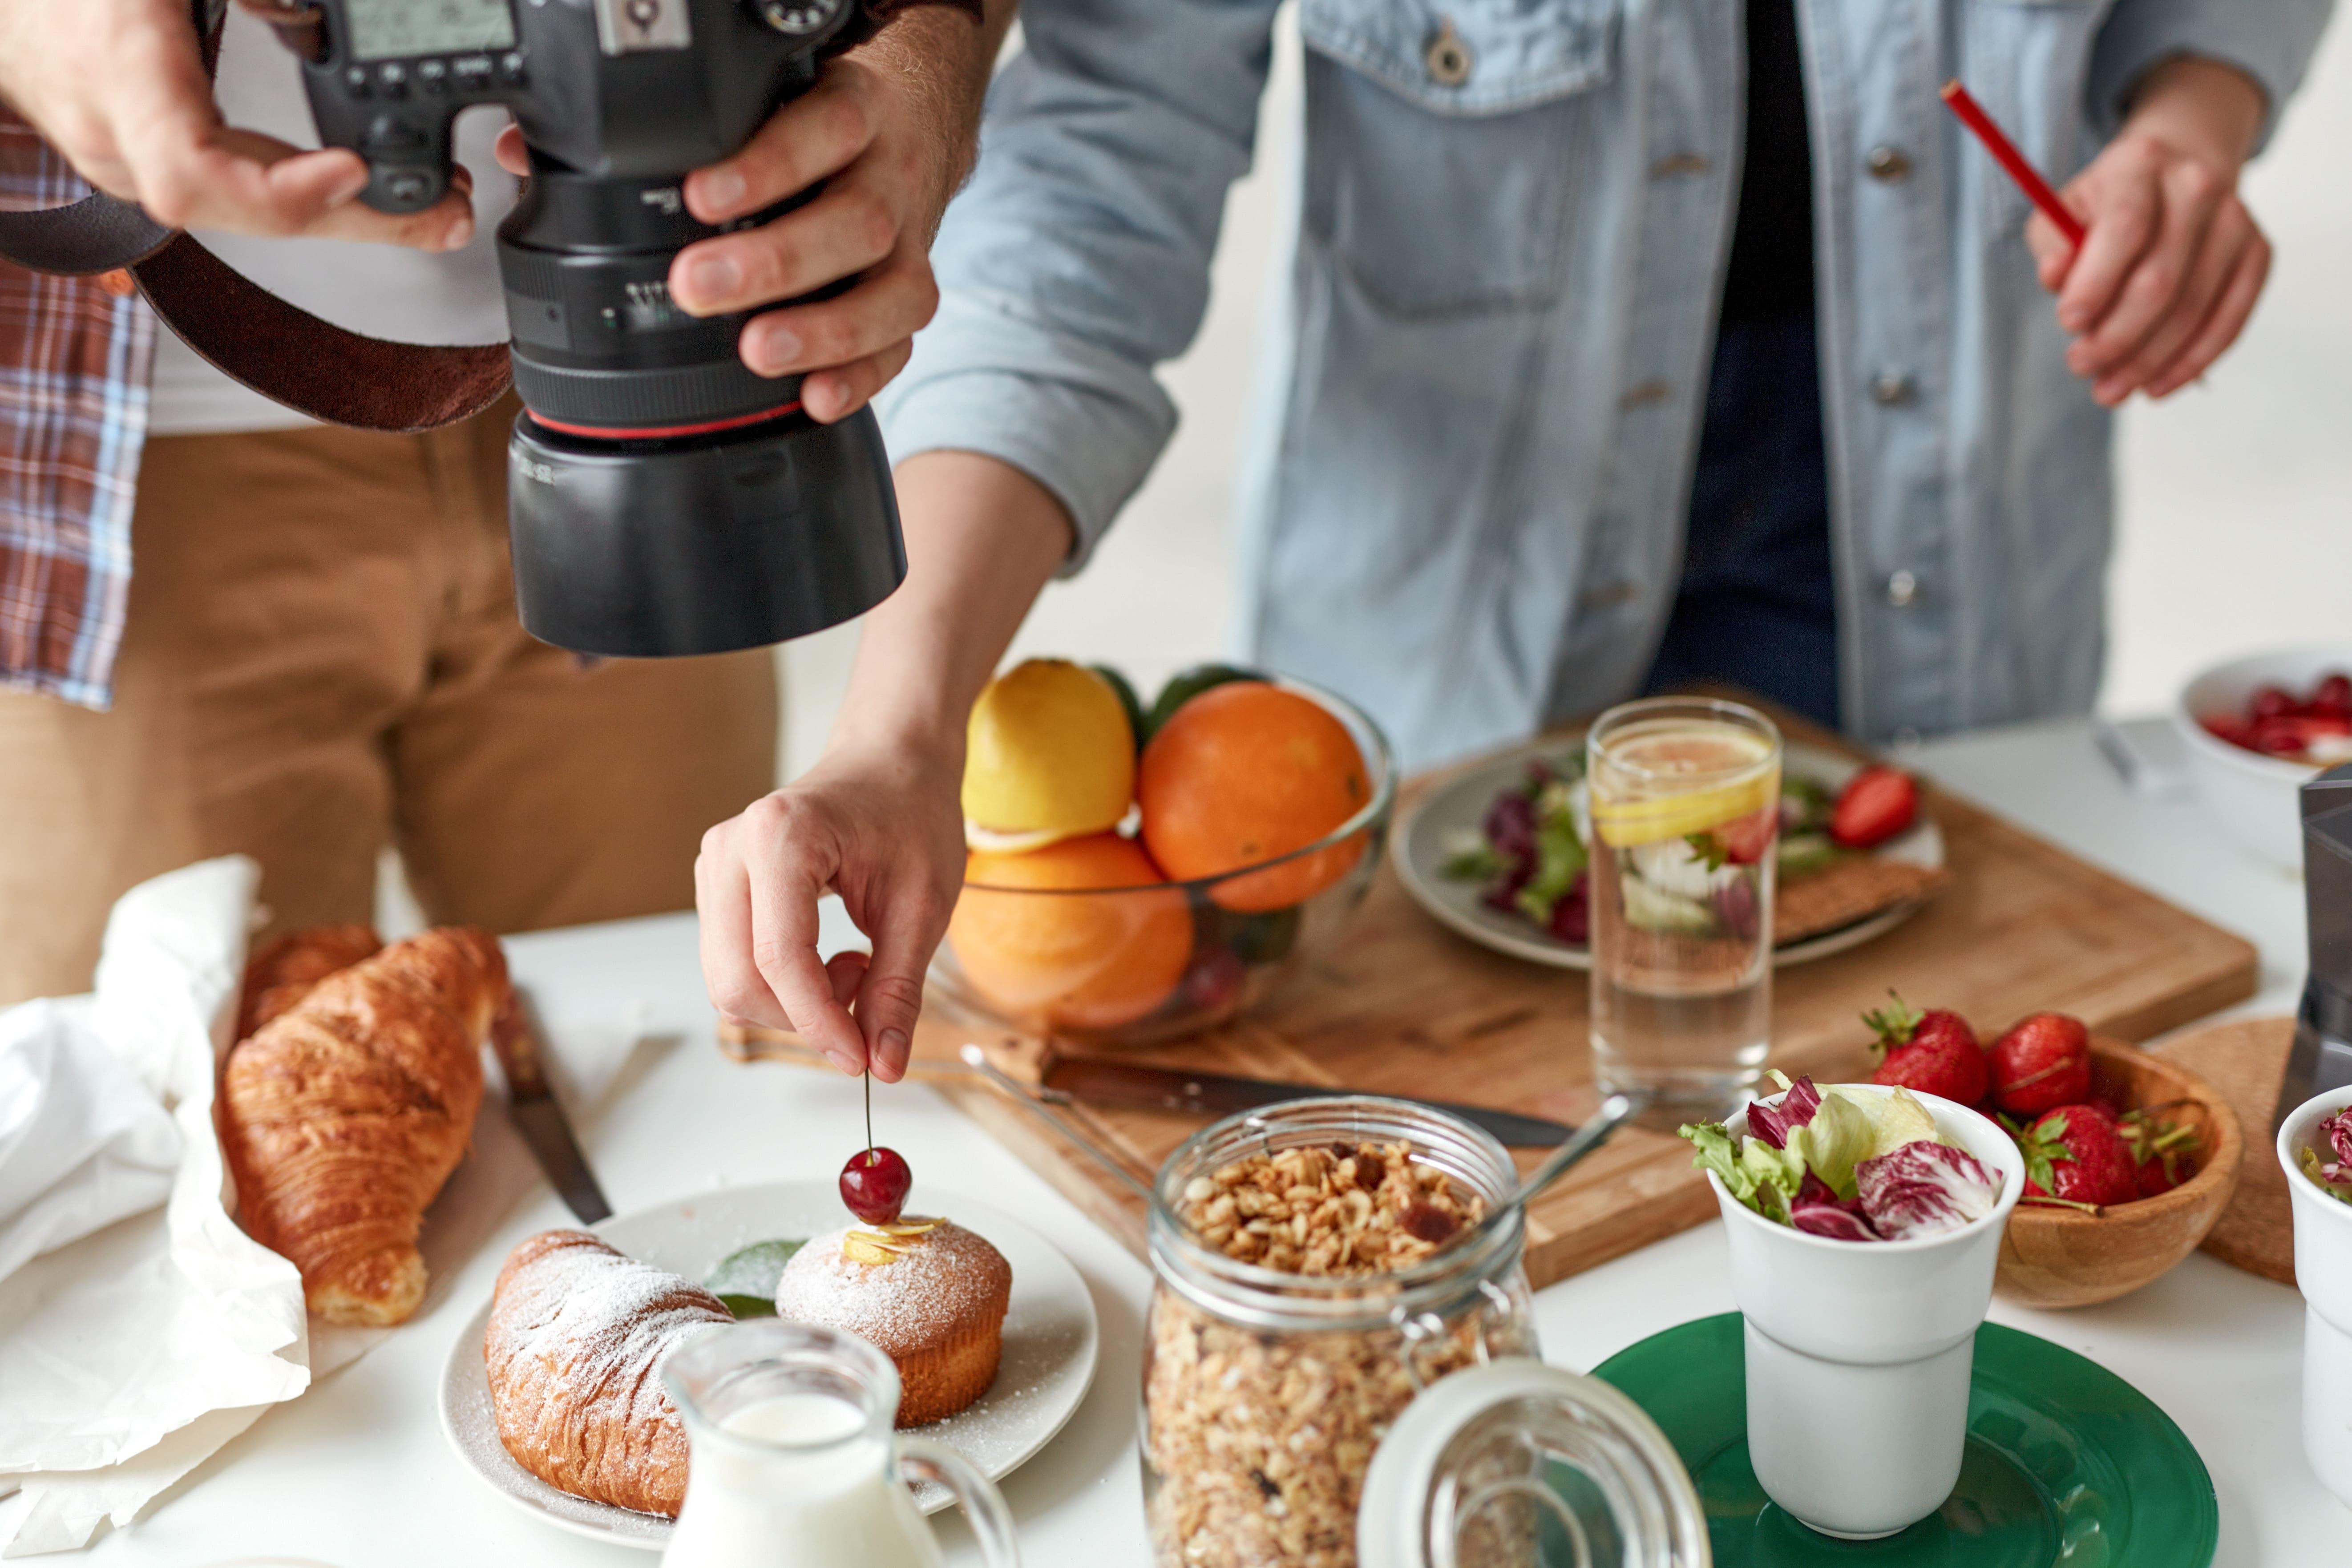 Food photography at home